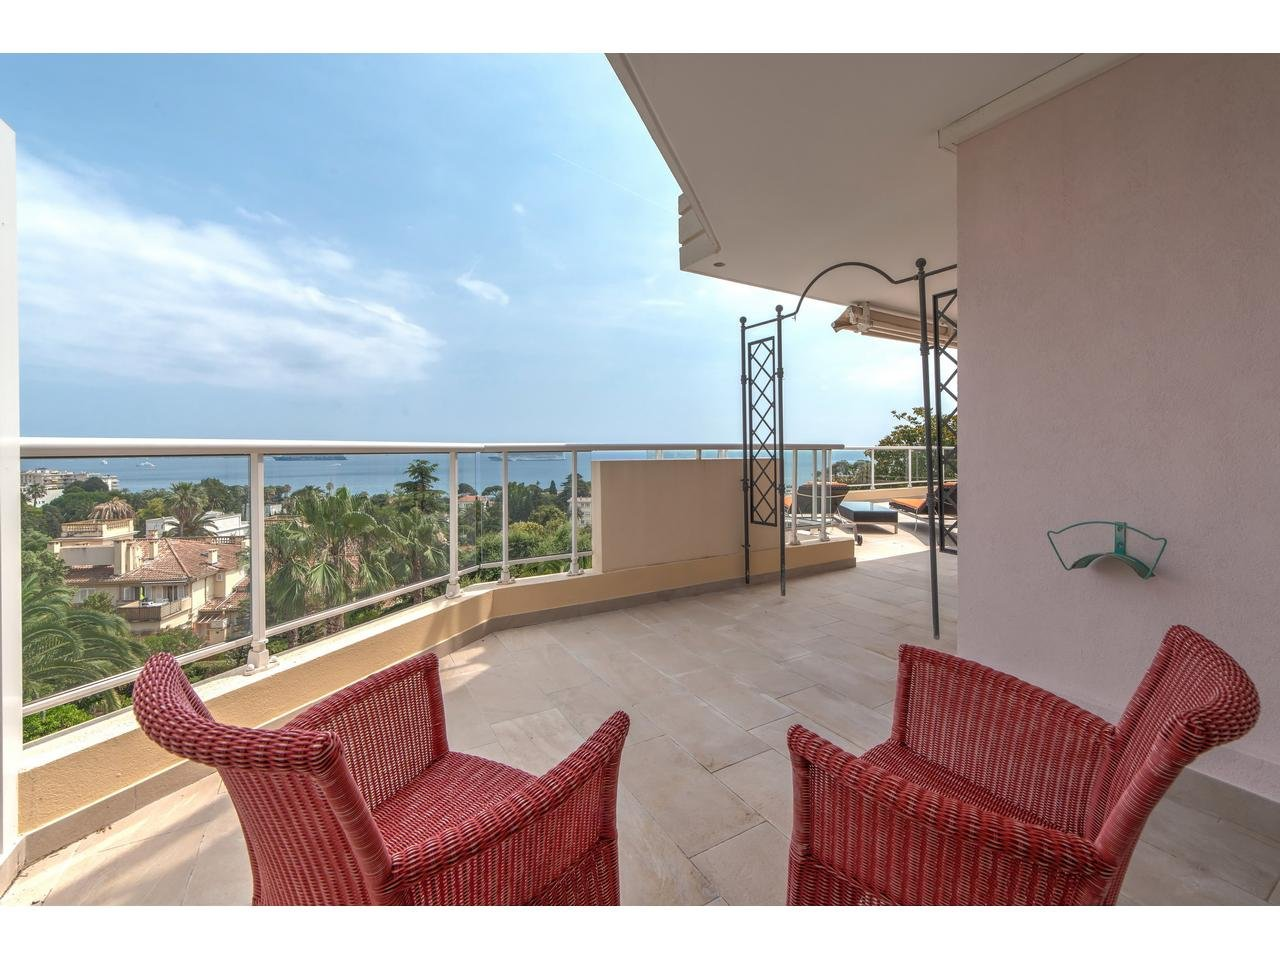 Appartement  4 Rooms 110m2  for sale  1 650 000 €